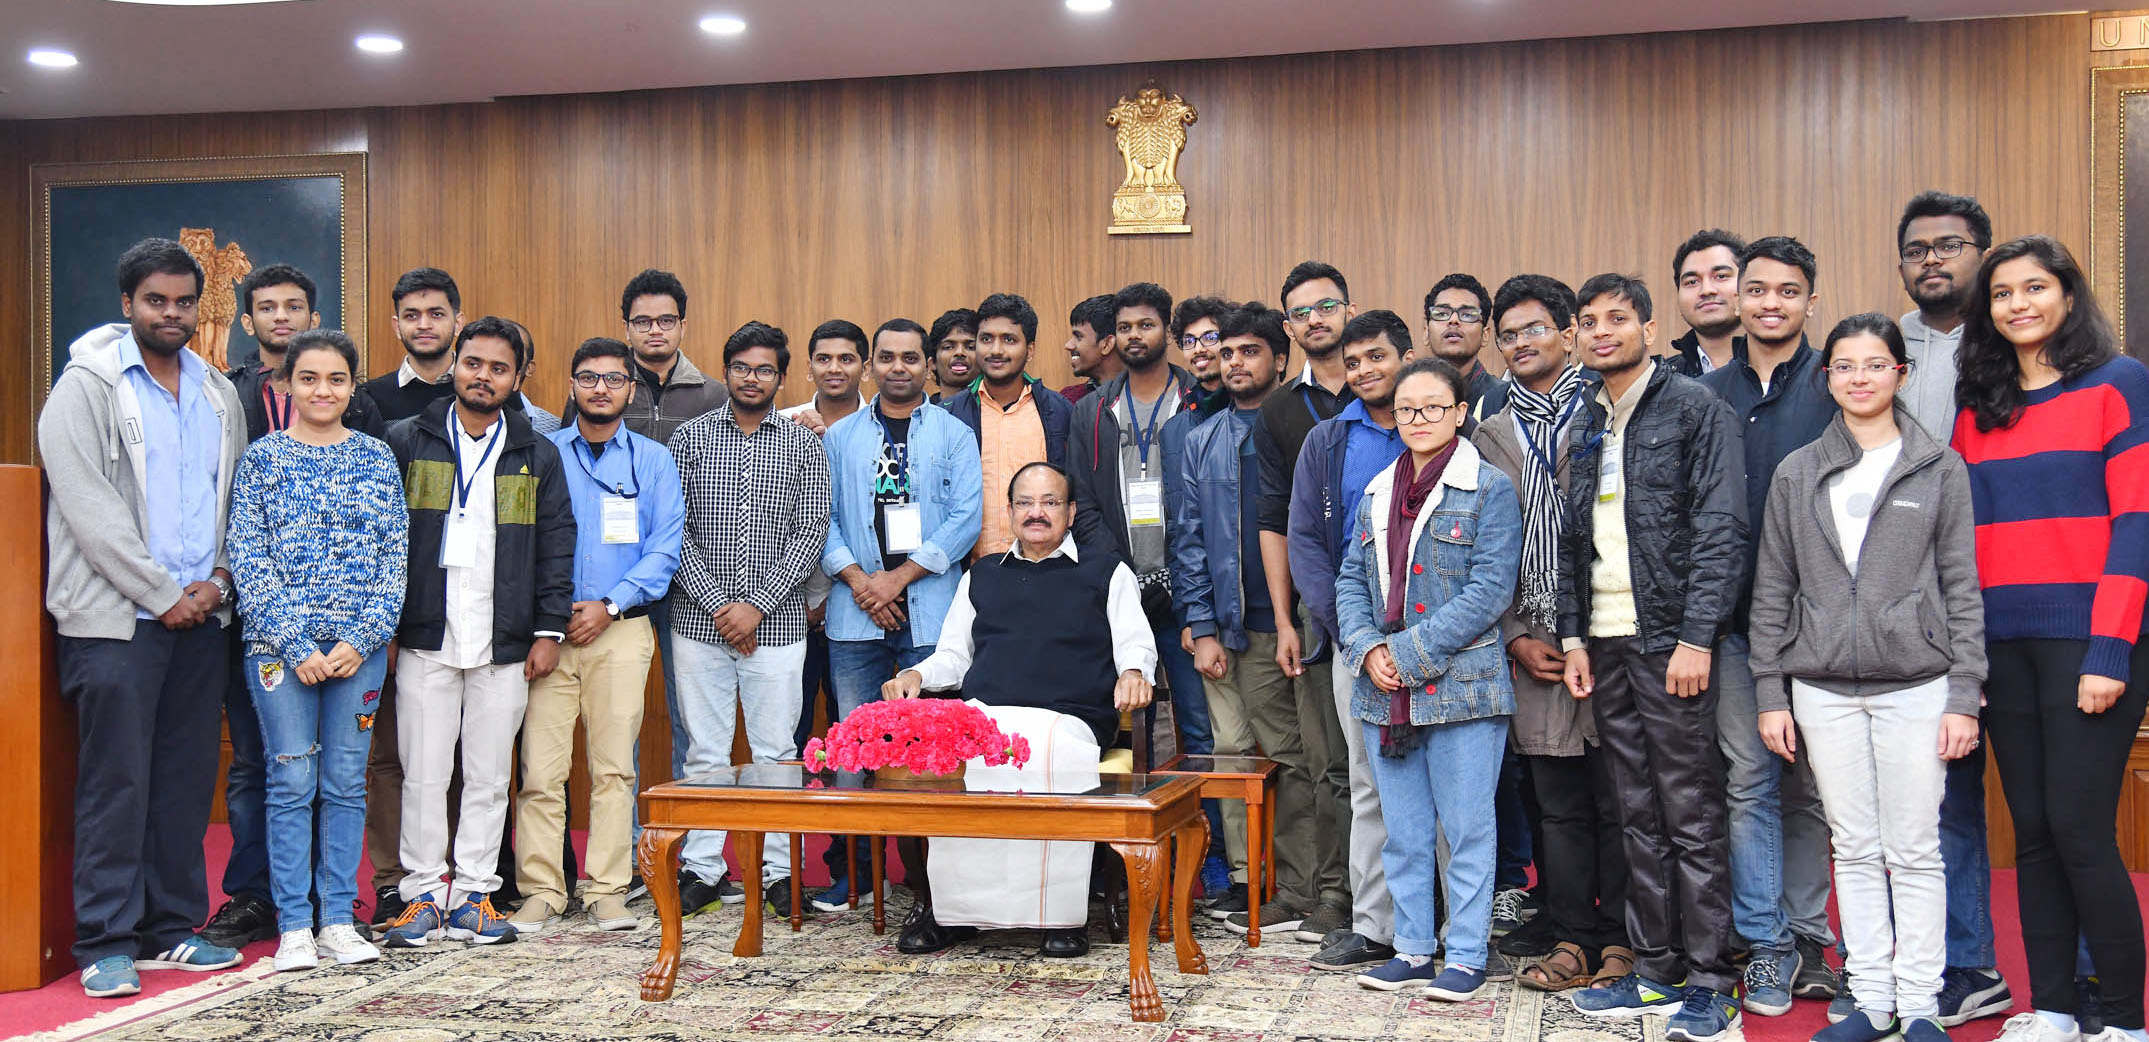 Vice President, M. Venkaiah Naidu with a group of the members of Student Legislative Council of IIT Madras, in New Delhi on Thursday.